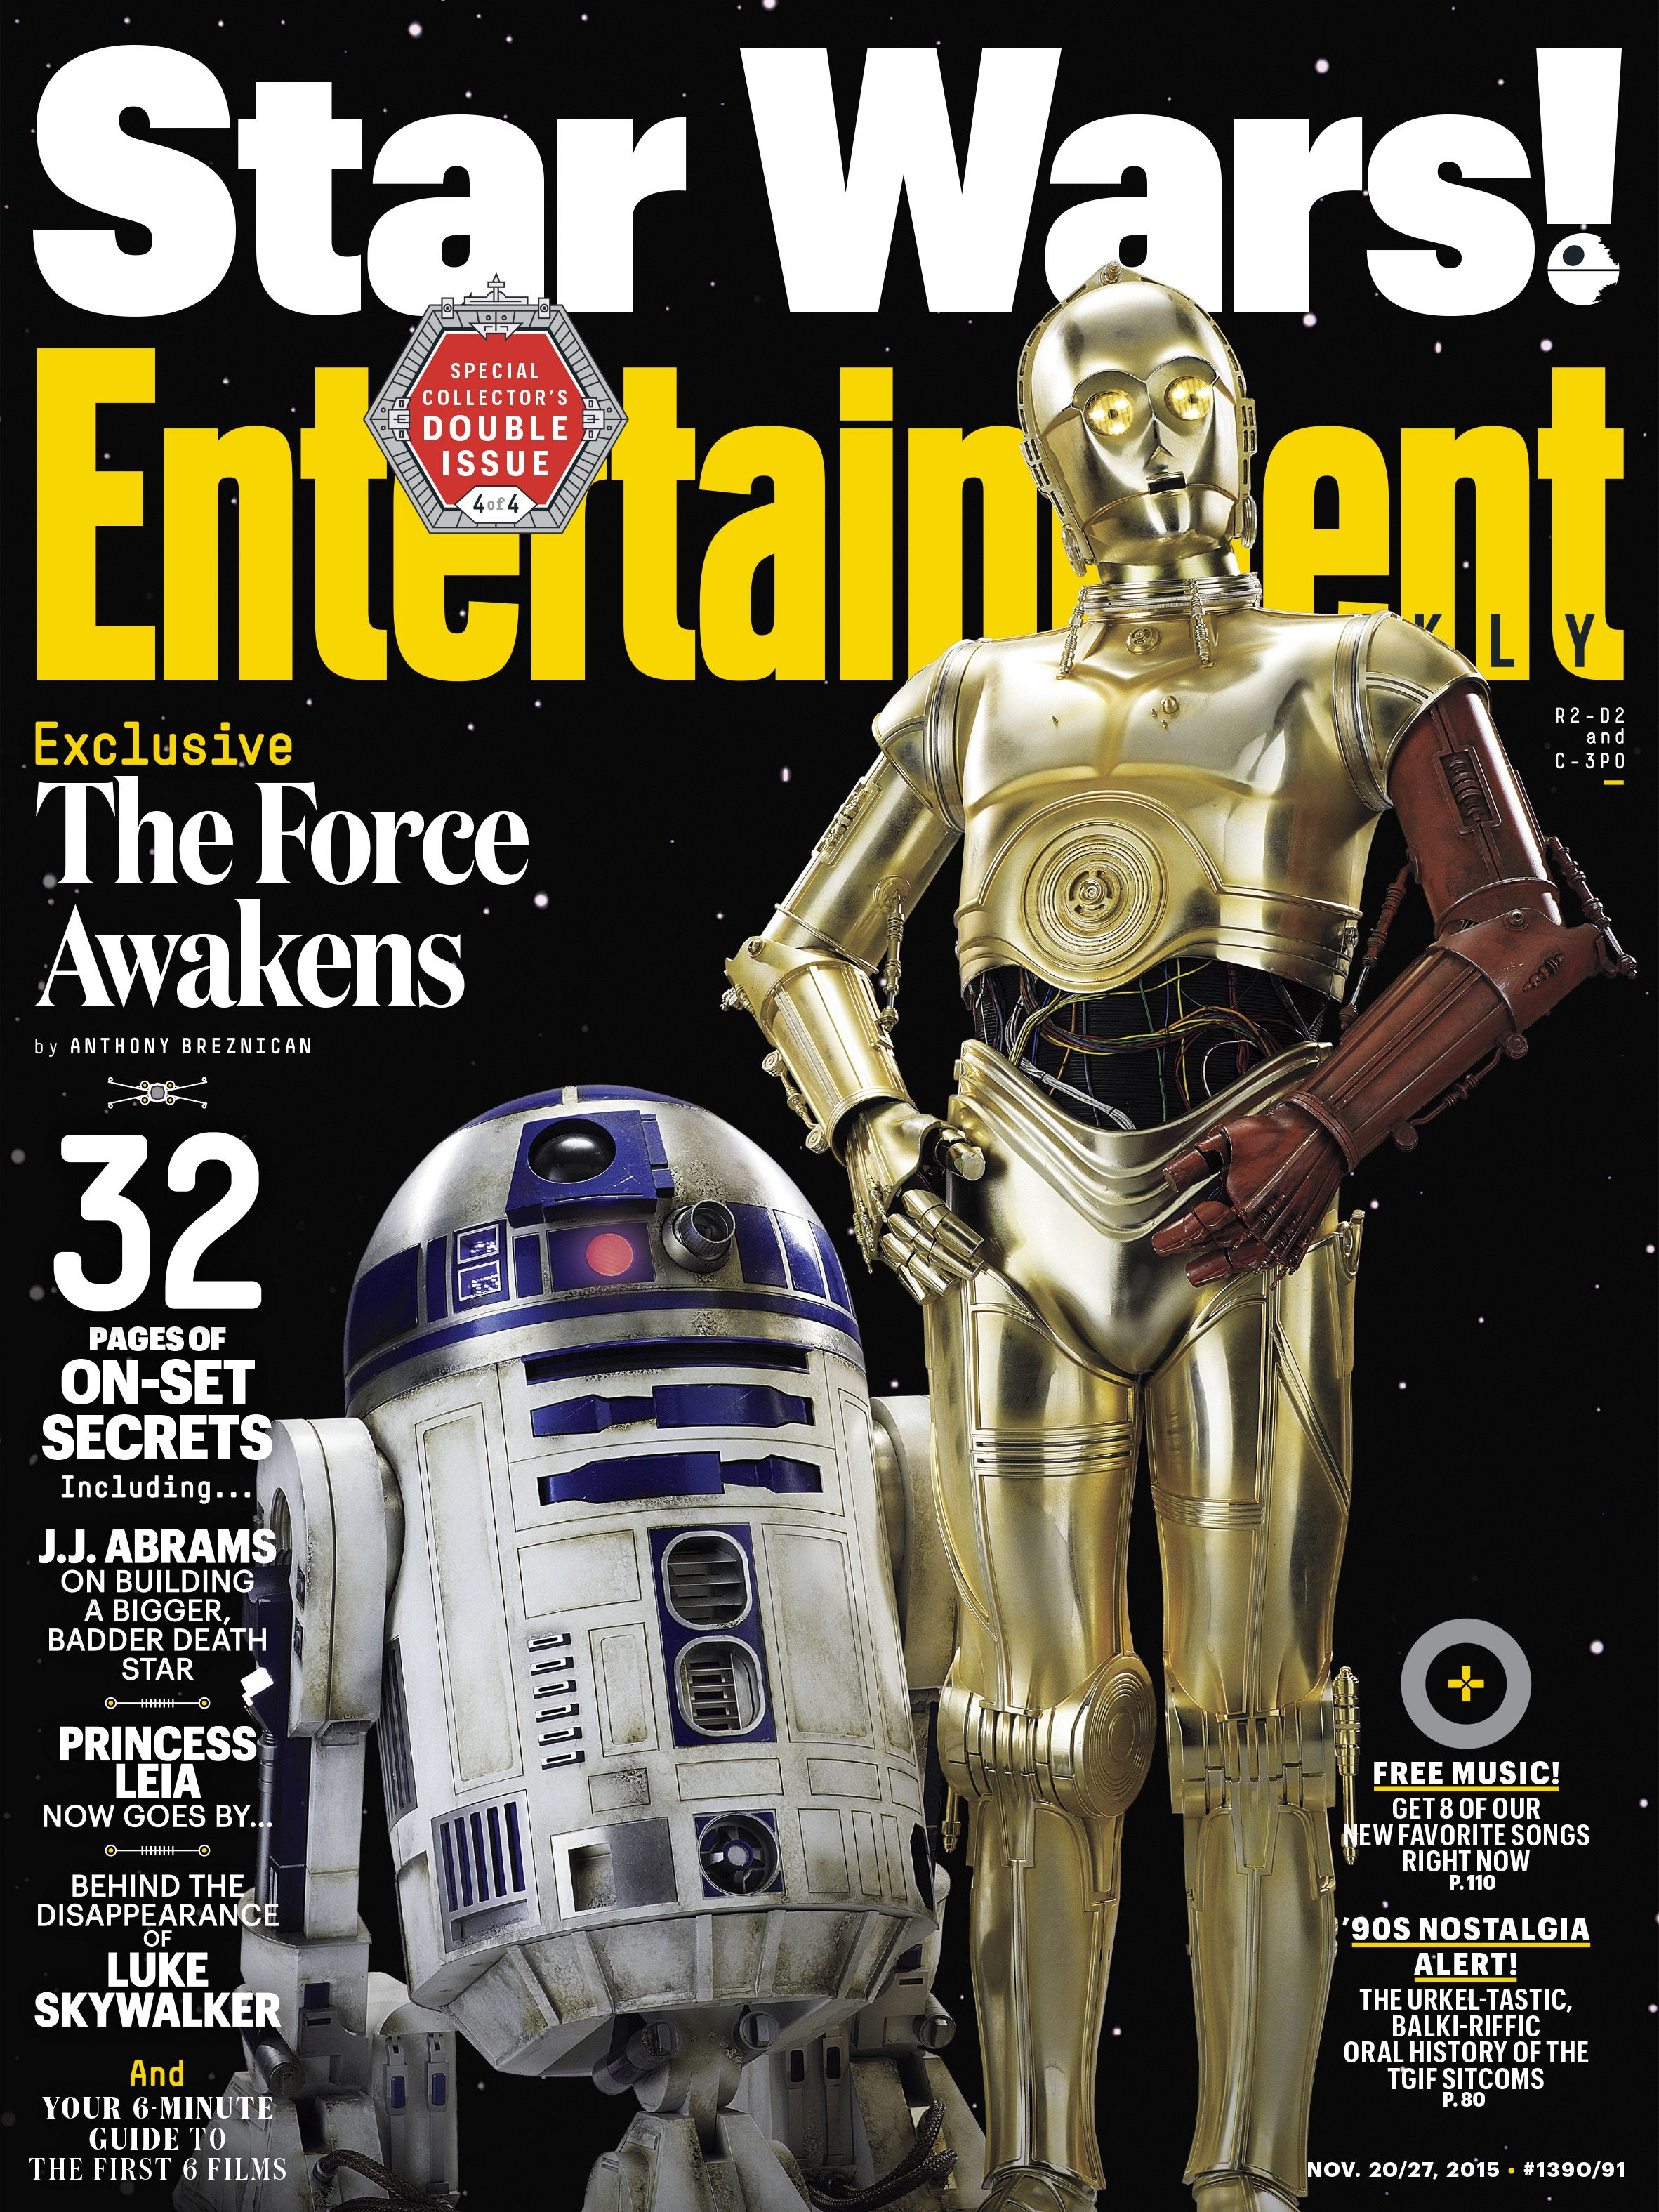 Entertainment Weekly - Star Wars: The Force Awakens, Nov 2015